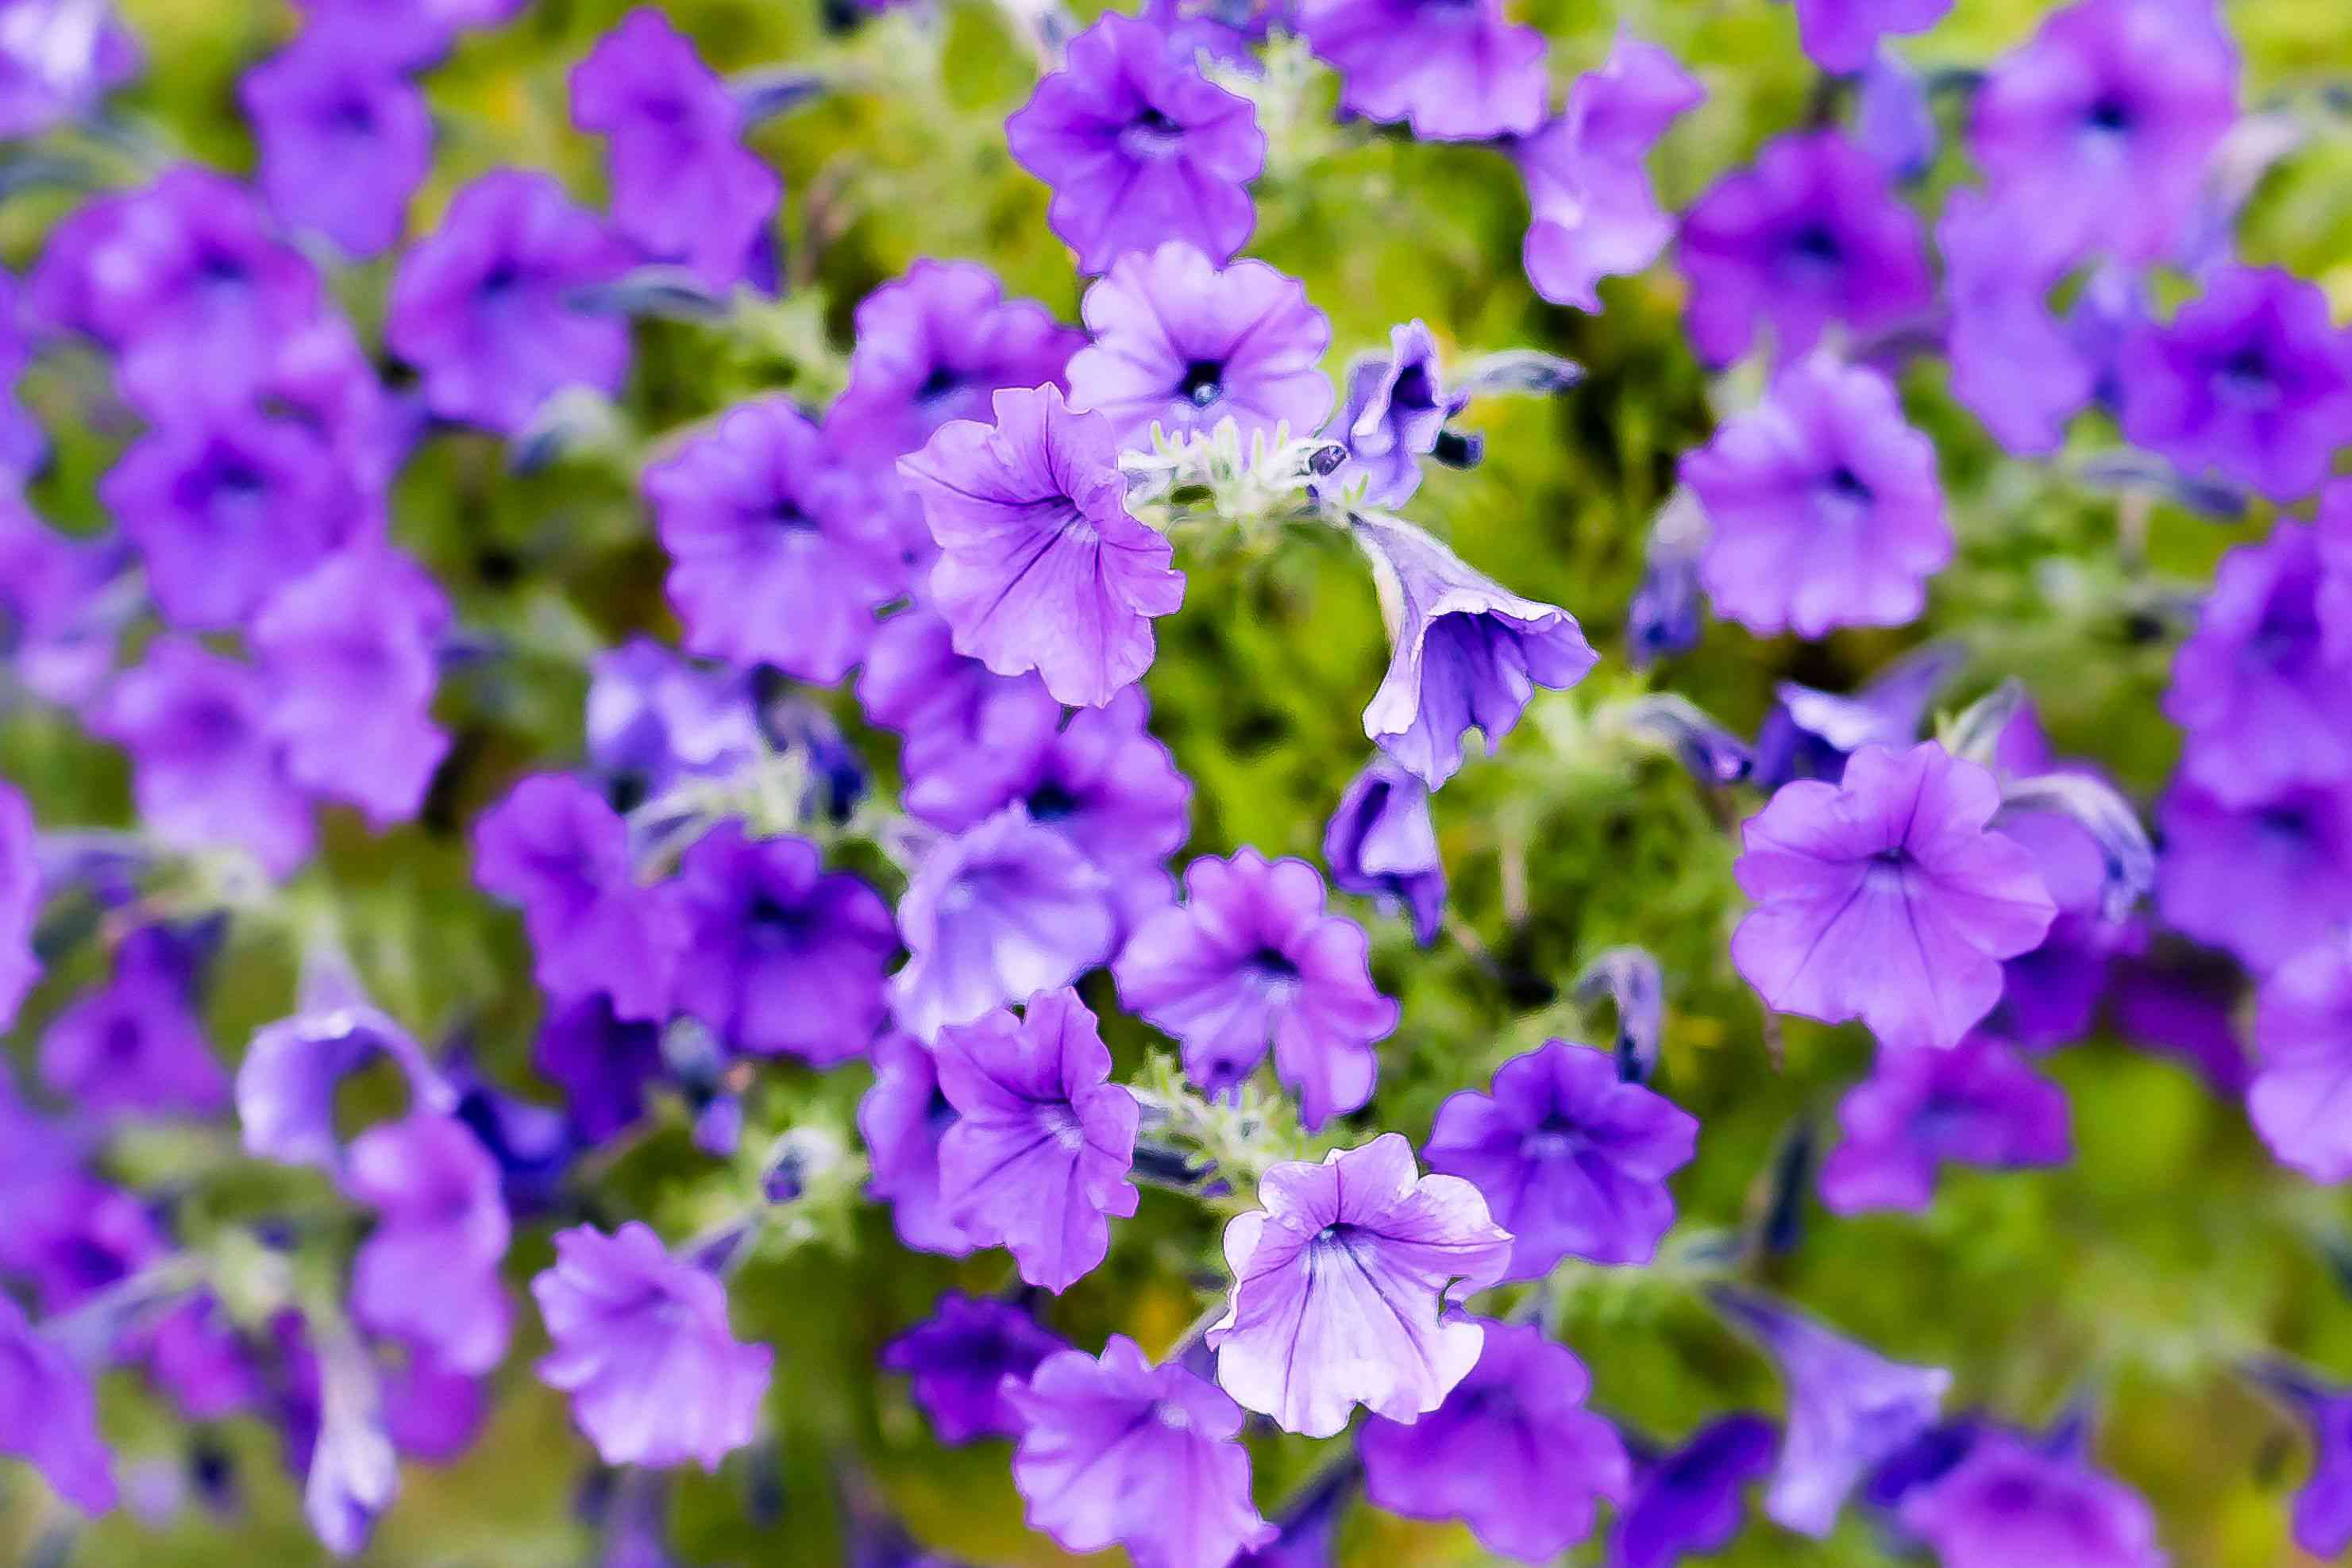 Petunia plant with trumpet-shaped ruffled purple flowers and buds closeup